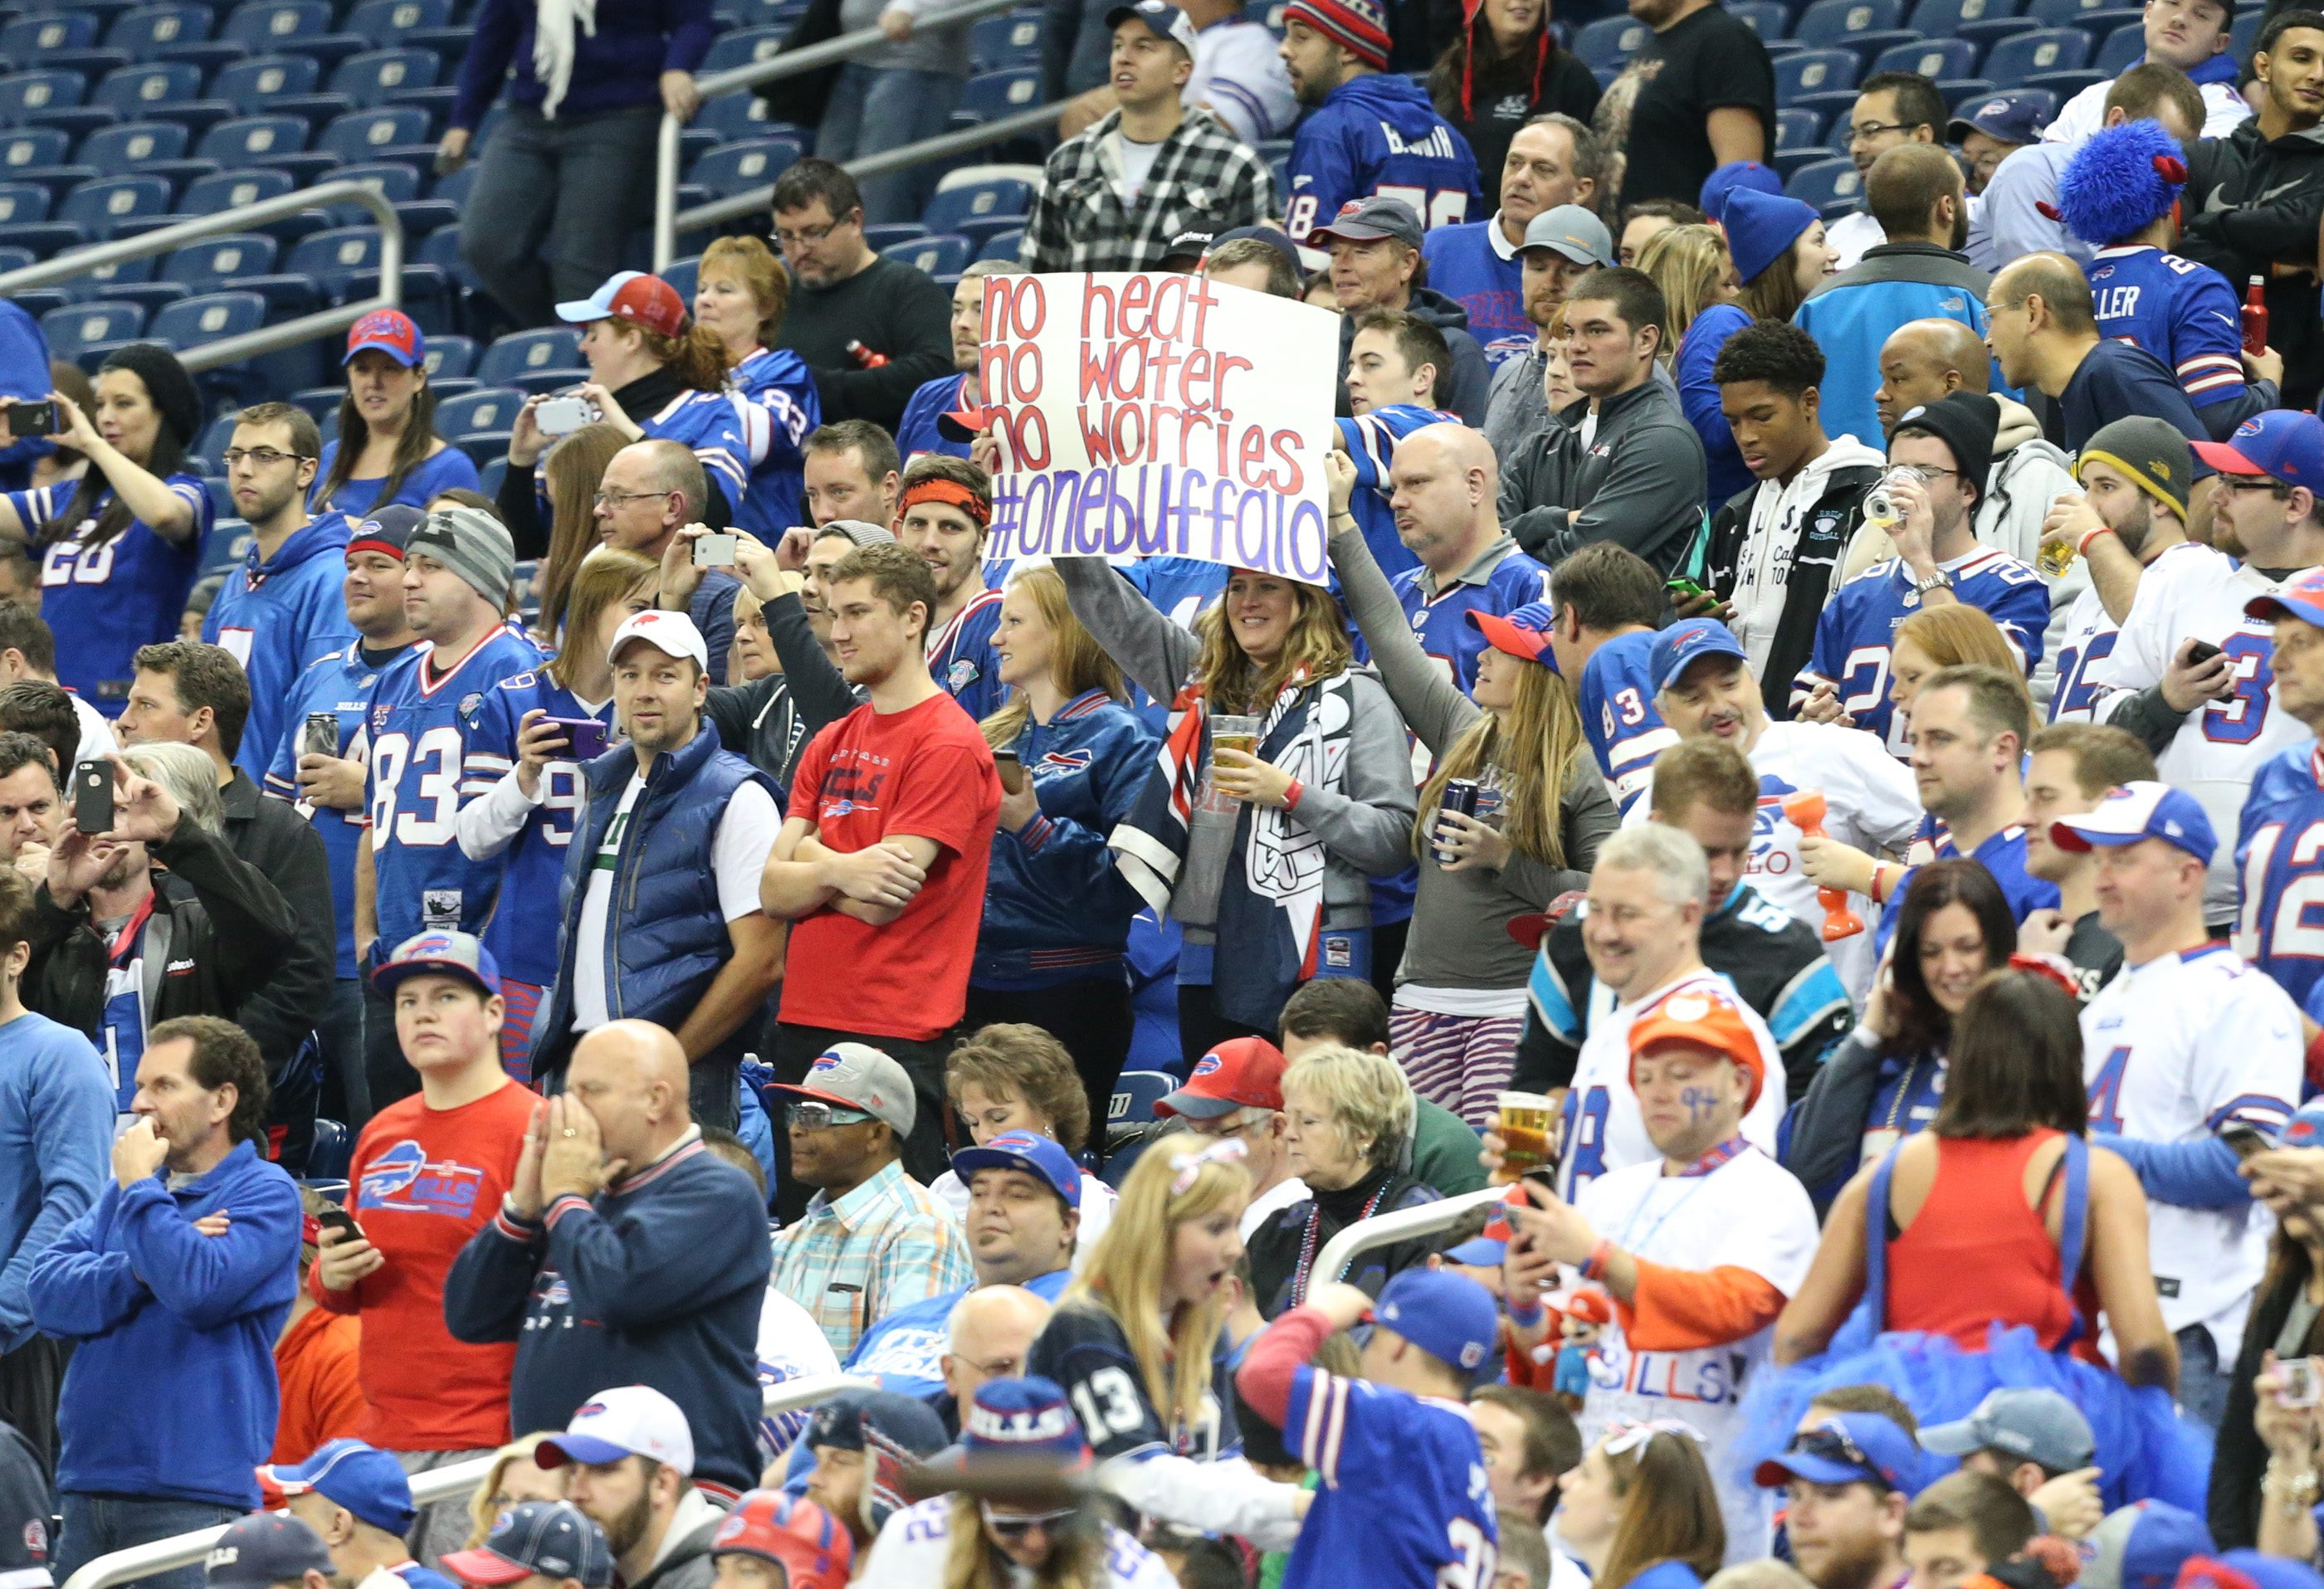 Bills fans cheer on their team from Ford Field in Detroit. (James P. McCoy/Buffalo News)